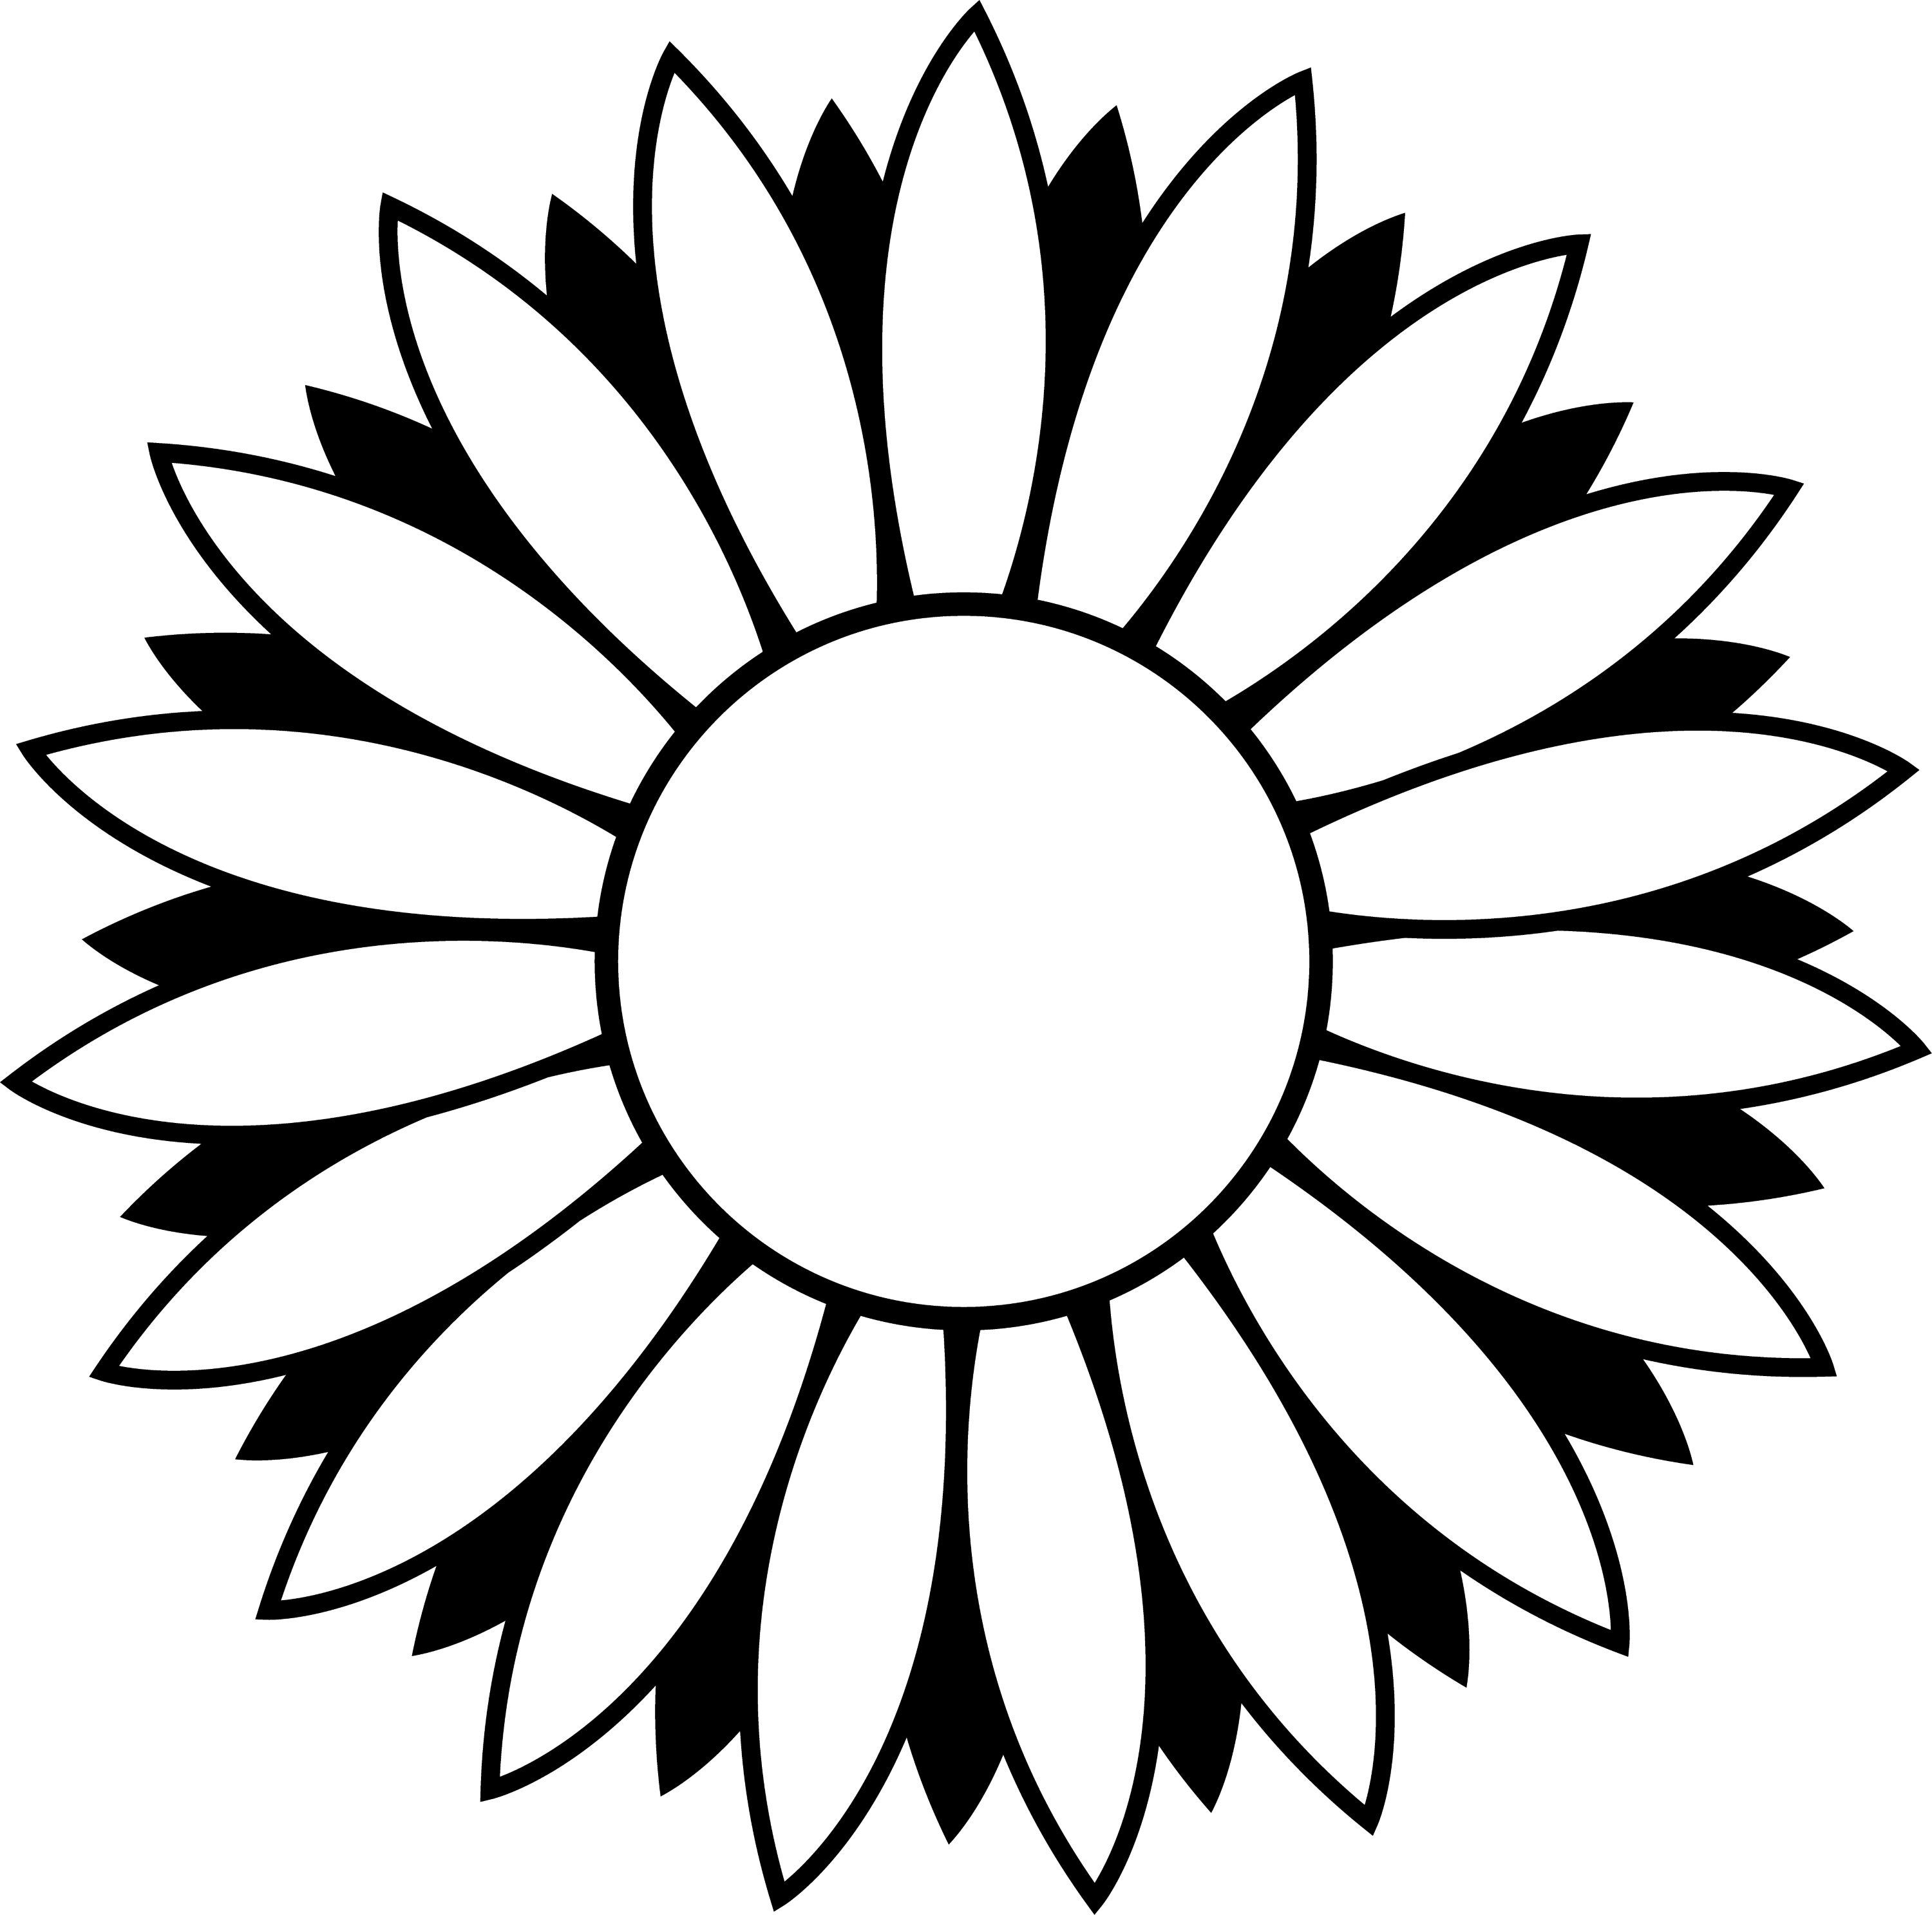 coloring flower png fileflower lineartsvg wikimedia commons flower coloring png